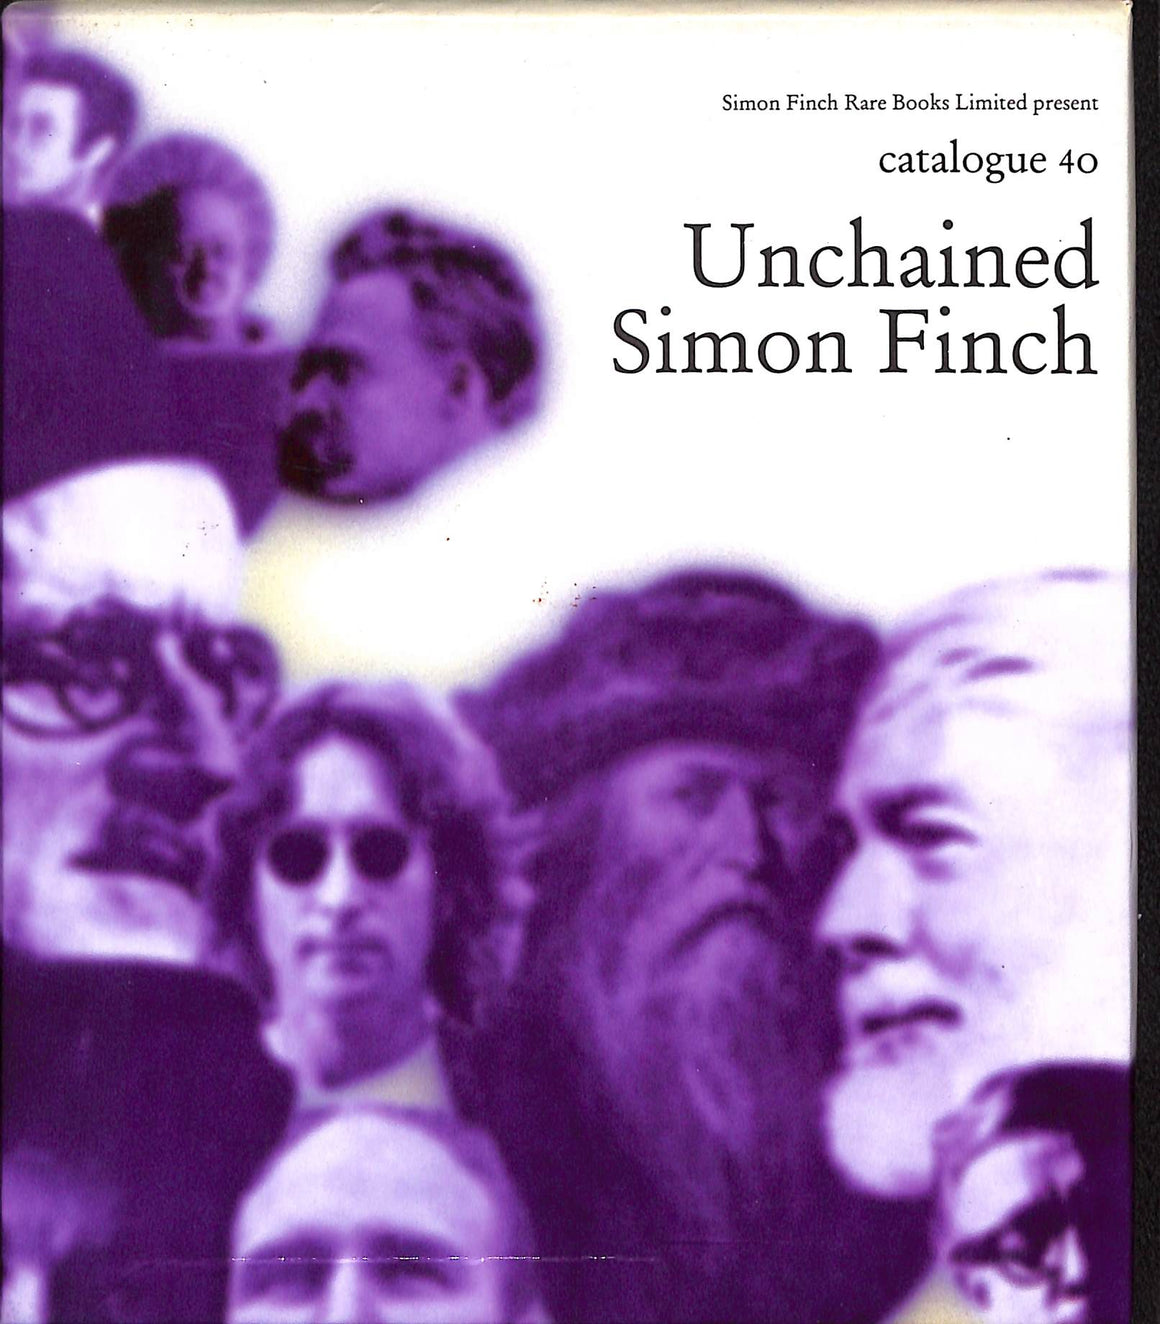 """Unchained Catalogue 40"" 1999 by Simon Finch Rare Books"